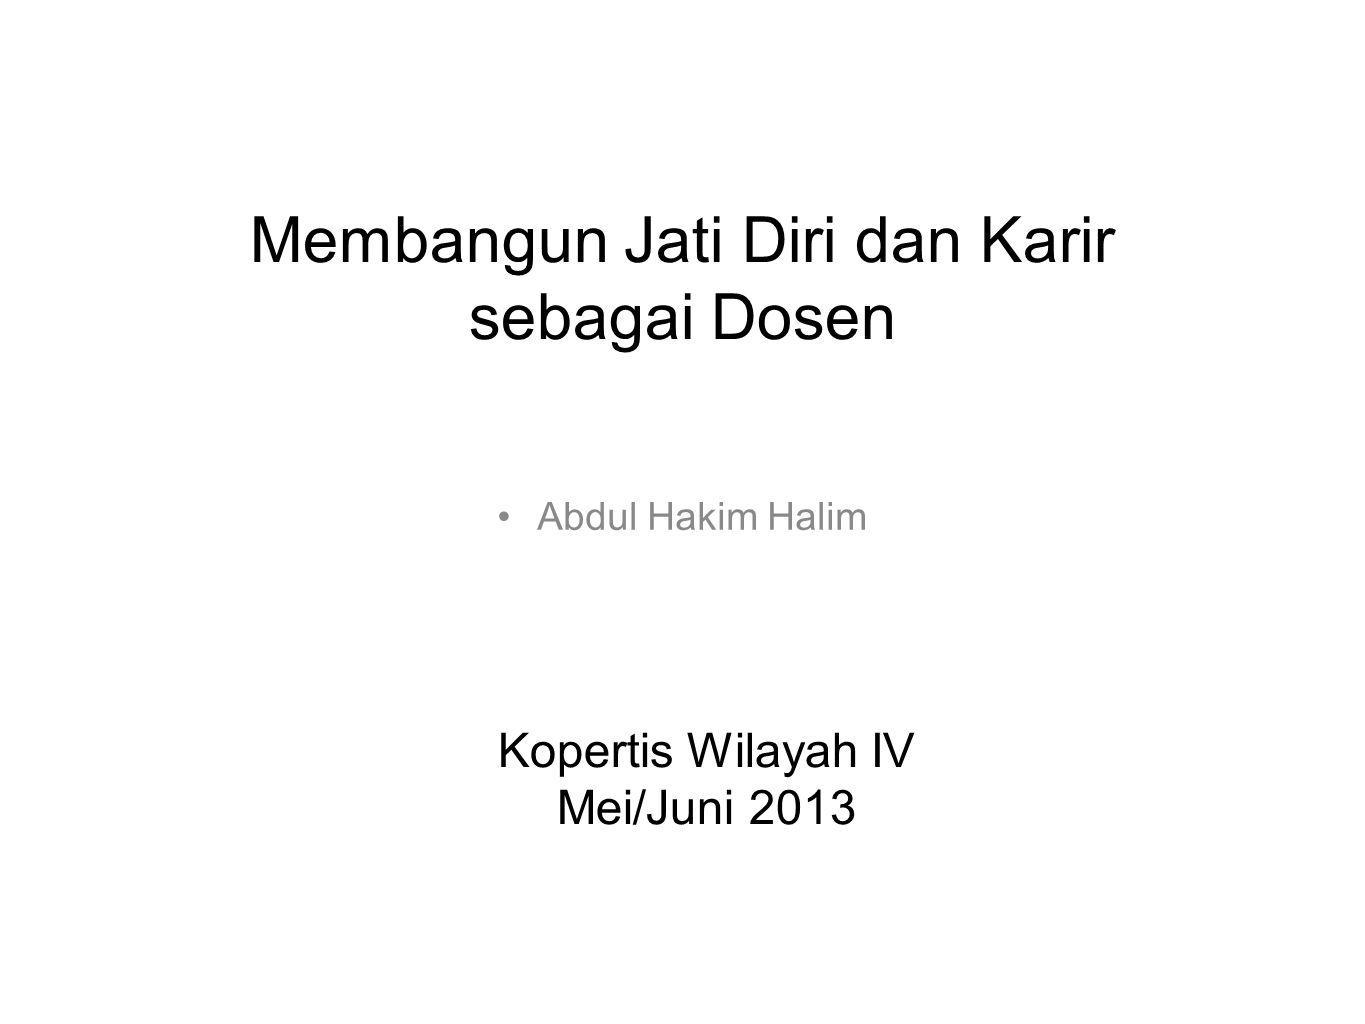 Dimensi kehidupan akademisi(1) Academic freedom Academic duty •Critics •Advocate •Mentor • Guardian •Enabler •Ambassador Role model 1.To teach 2.To mentor 3.To serve the university 4.To discover 5.To publish 6.To tell the truth 7.To reach beyond the wall 8.To change Academic duty Macfarlane, B., 2011, What are university professors for.